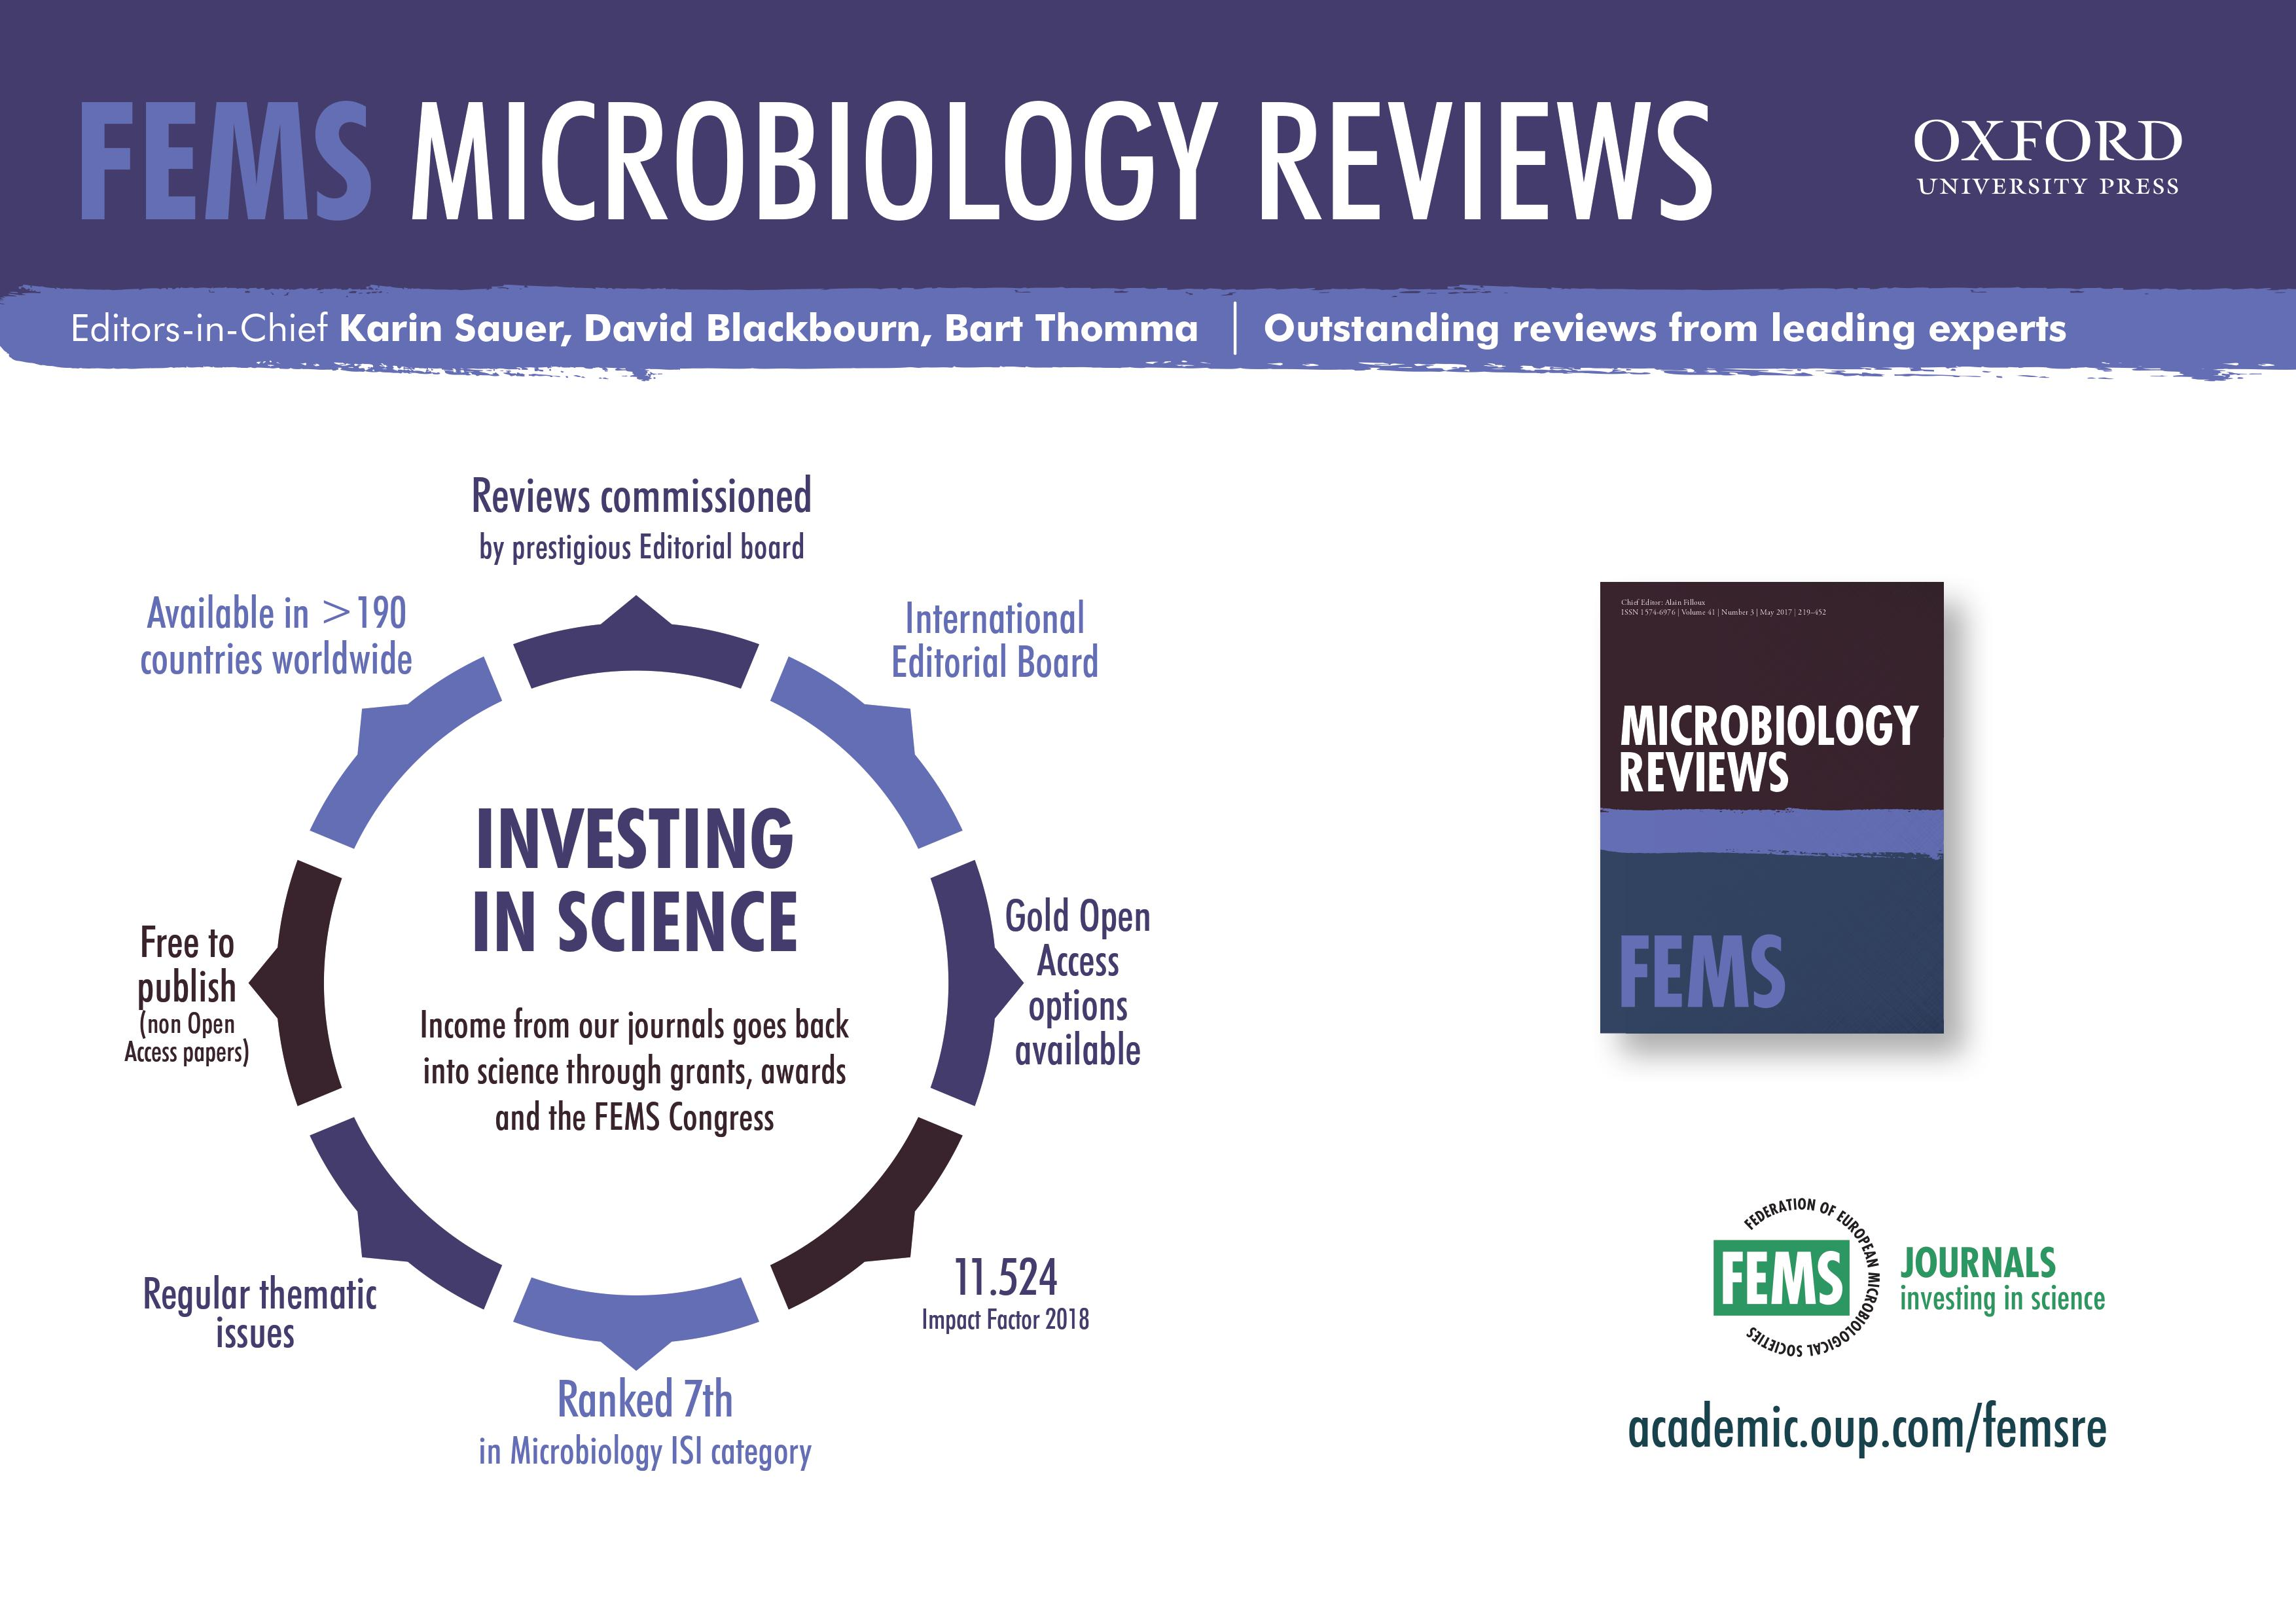 About Fems Microbiology Reviews Oxford Academic